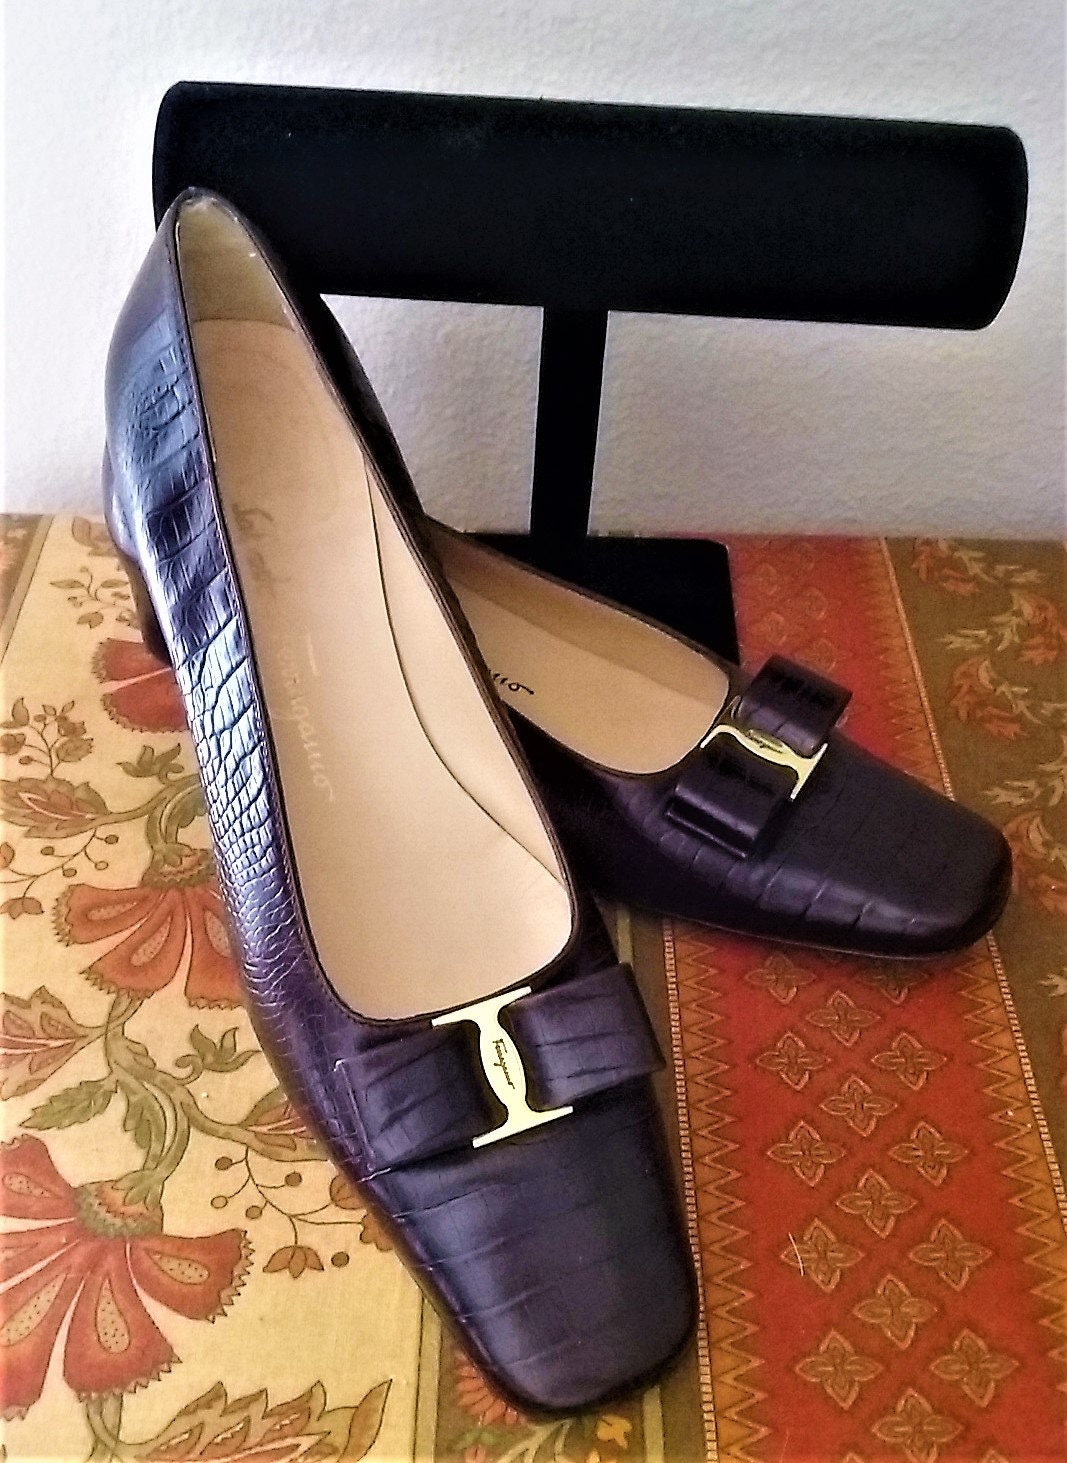 02225391432bd Salvatore Ferragamo Brown Shoes Size 11 Extra Narrow AA | Etsy